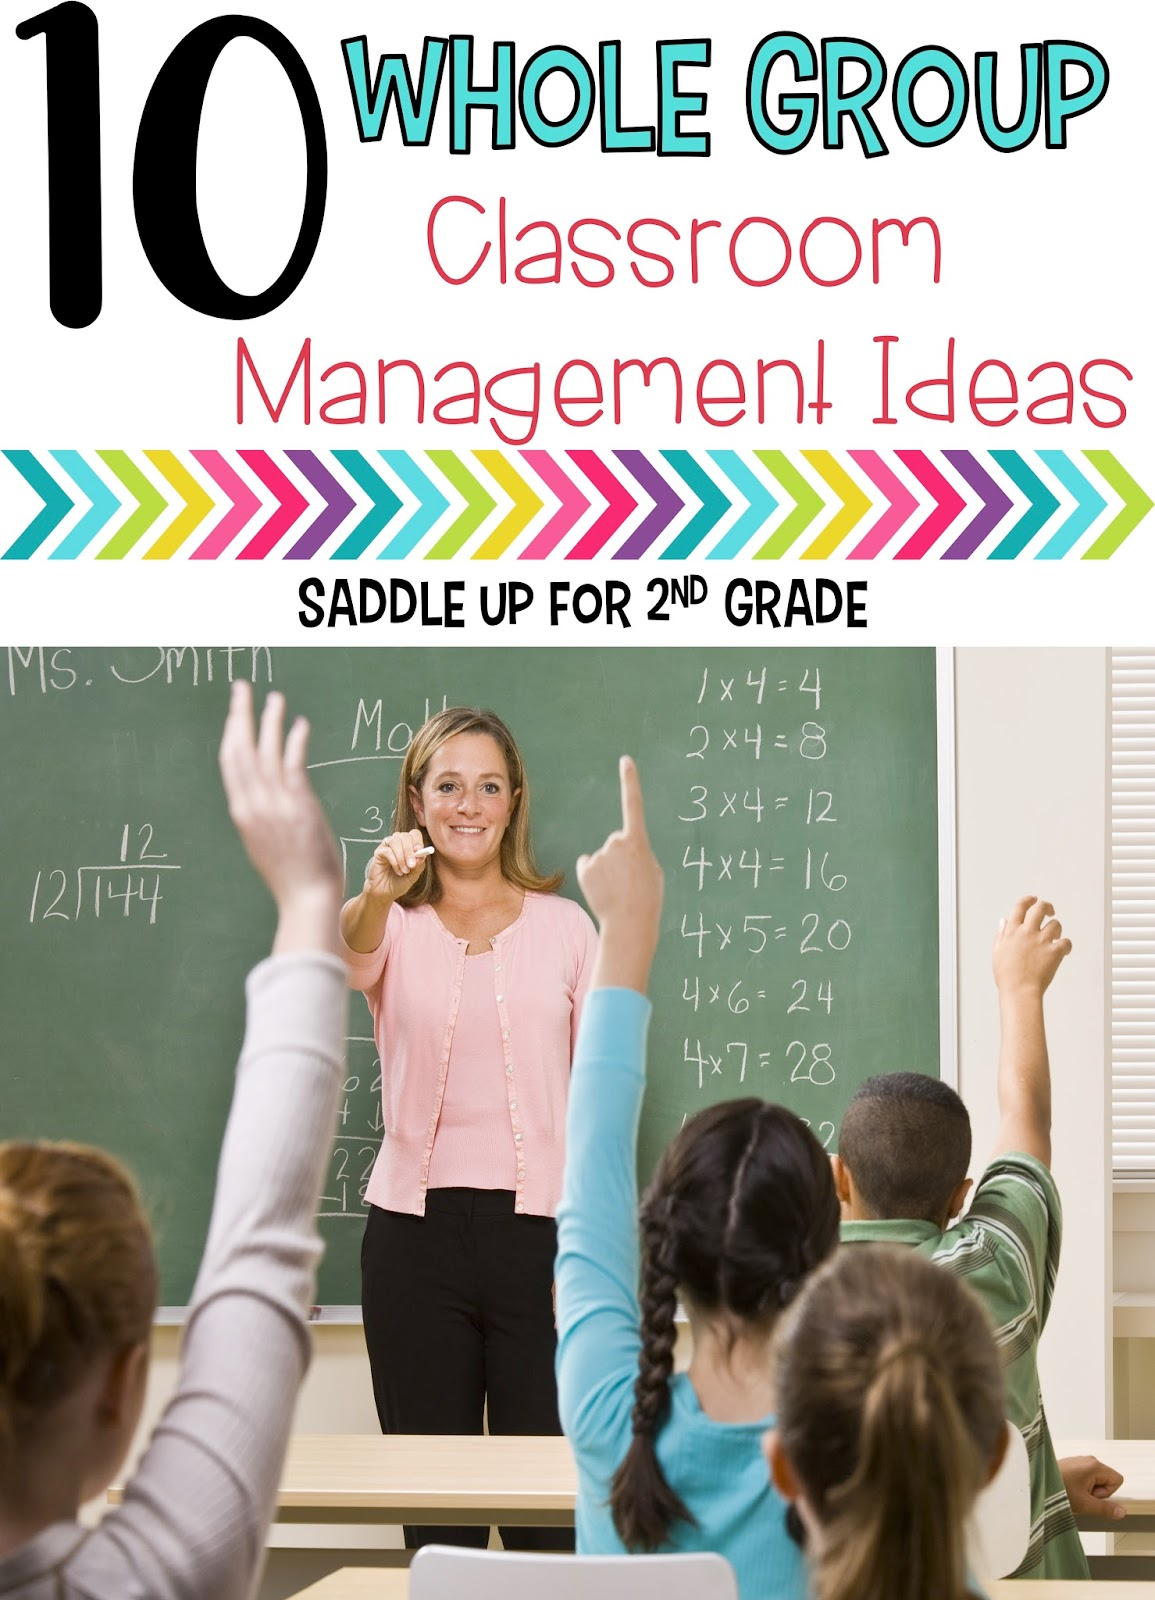 This blog post is full of classroom management ideas to help start back to school off right. These strategies are perfect for whole group instruction.